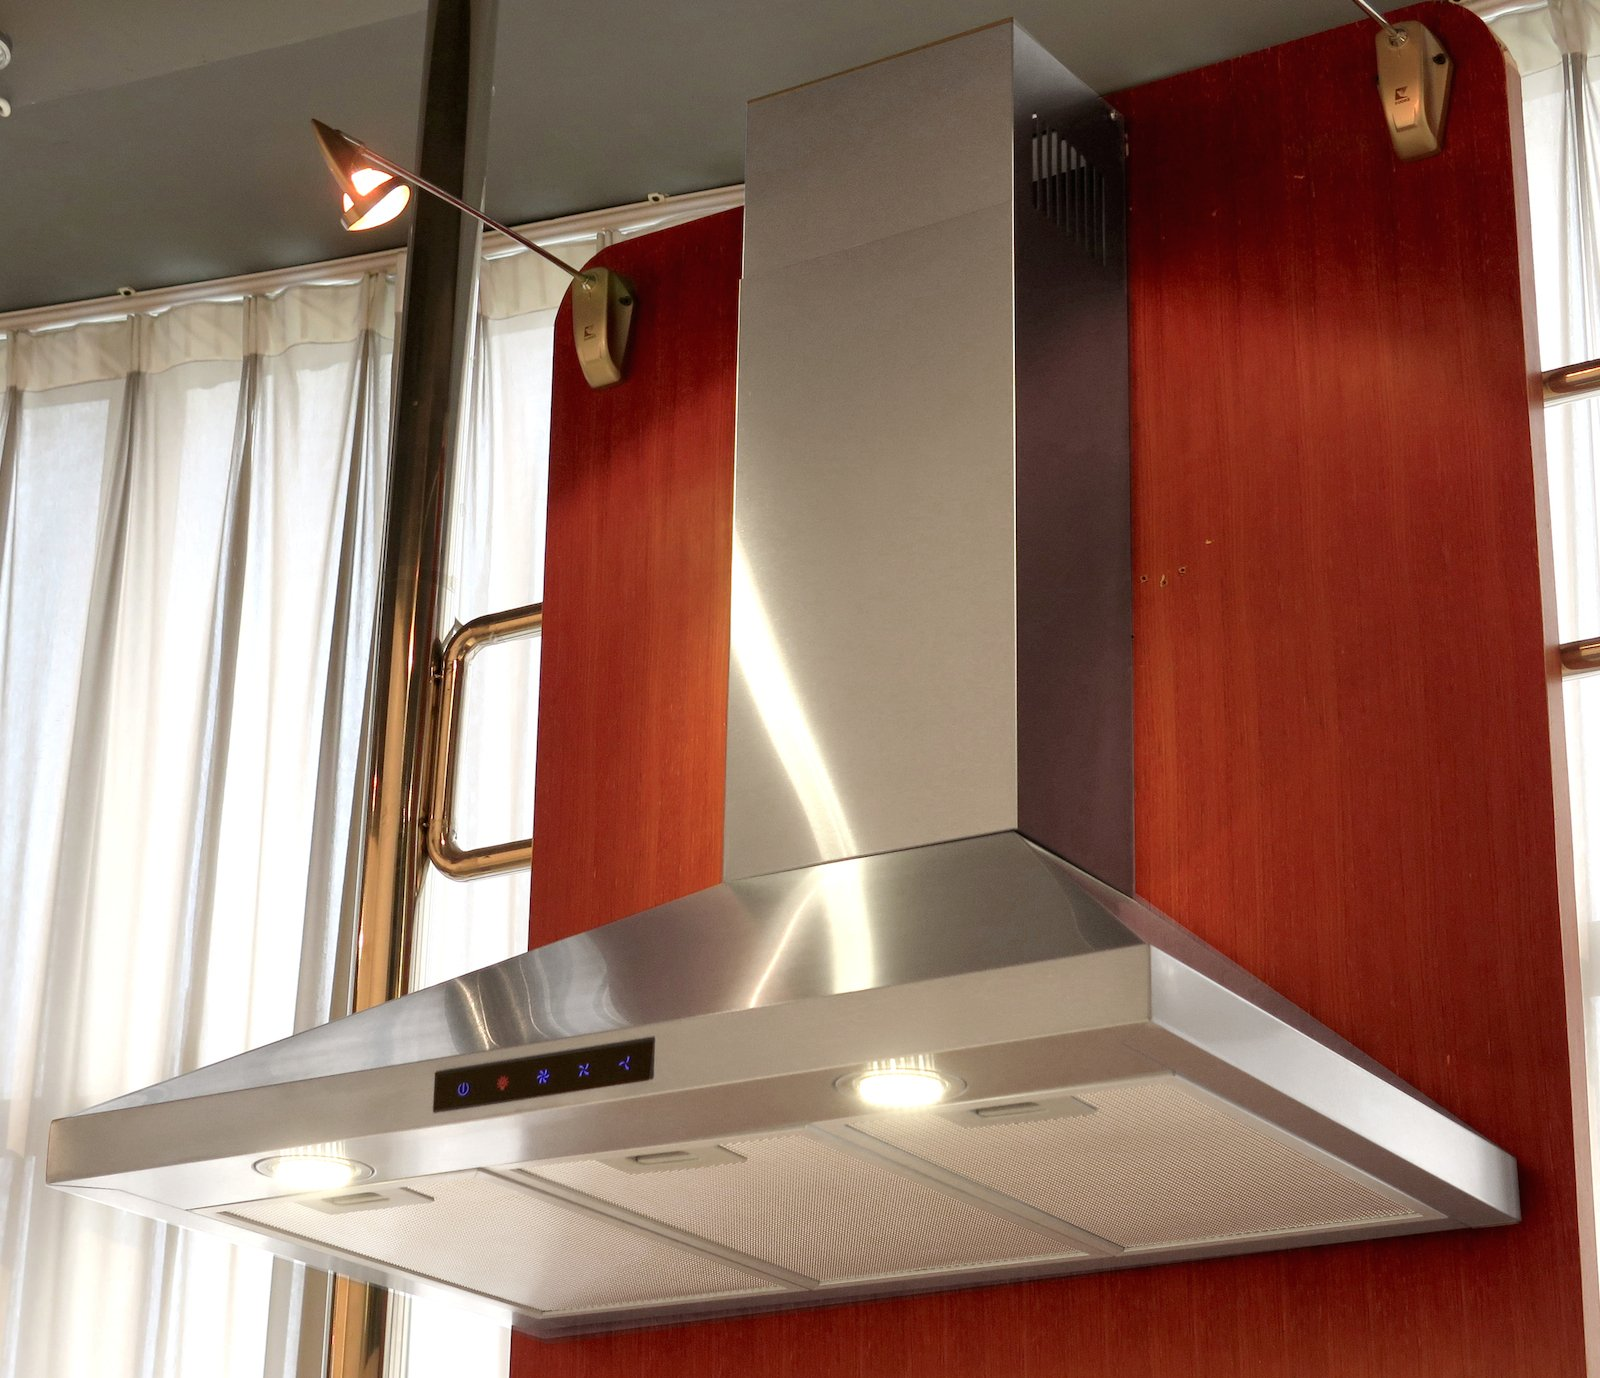 Kitchen Bath Collection STL75-LED Stainless Steel Wall-Mounted Kitchen Range Hood with High-End LED Lights, 30'' by Kitchen Bath Collection (Image #4)